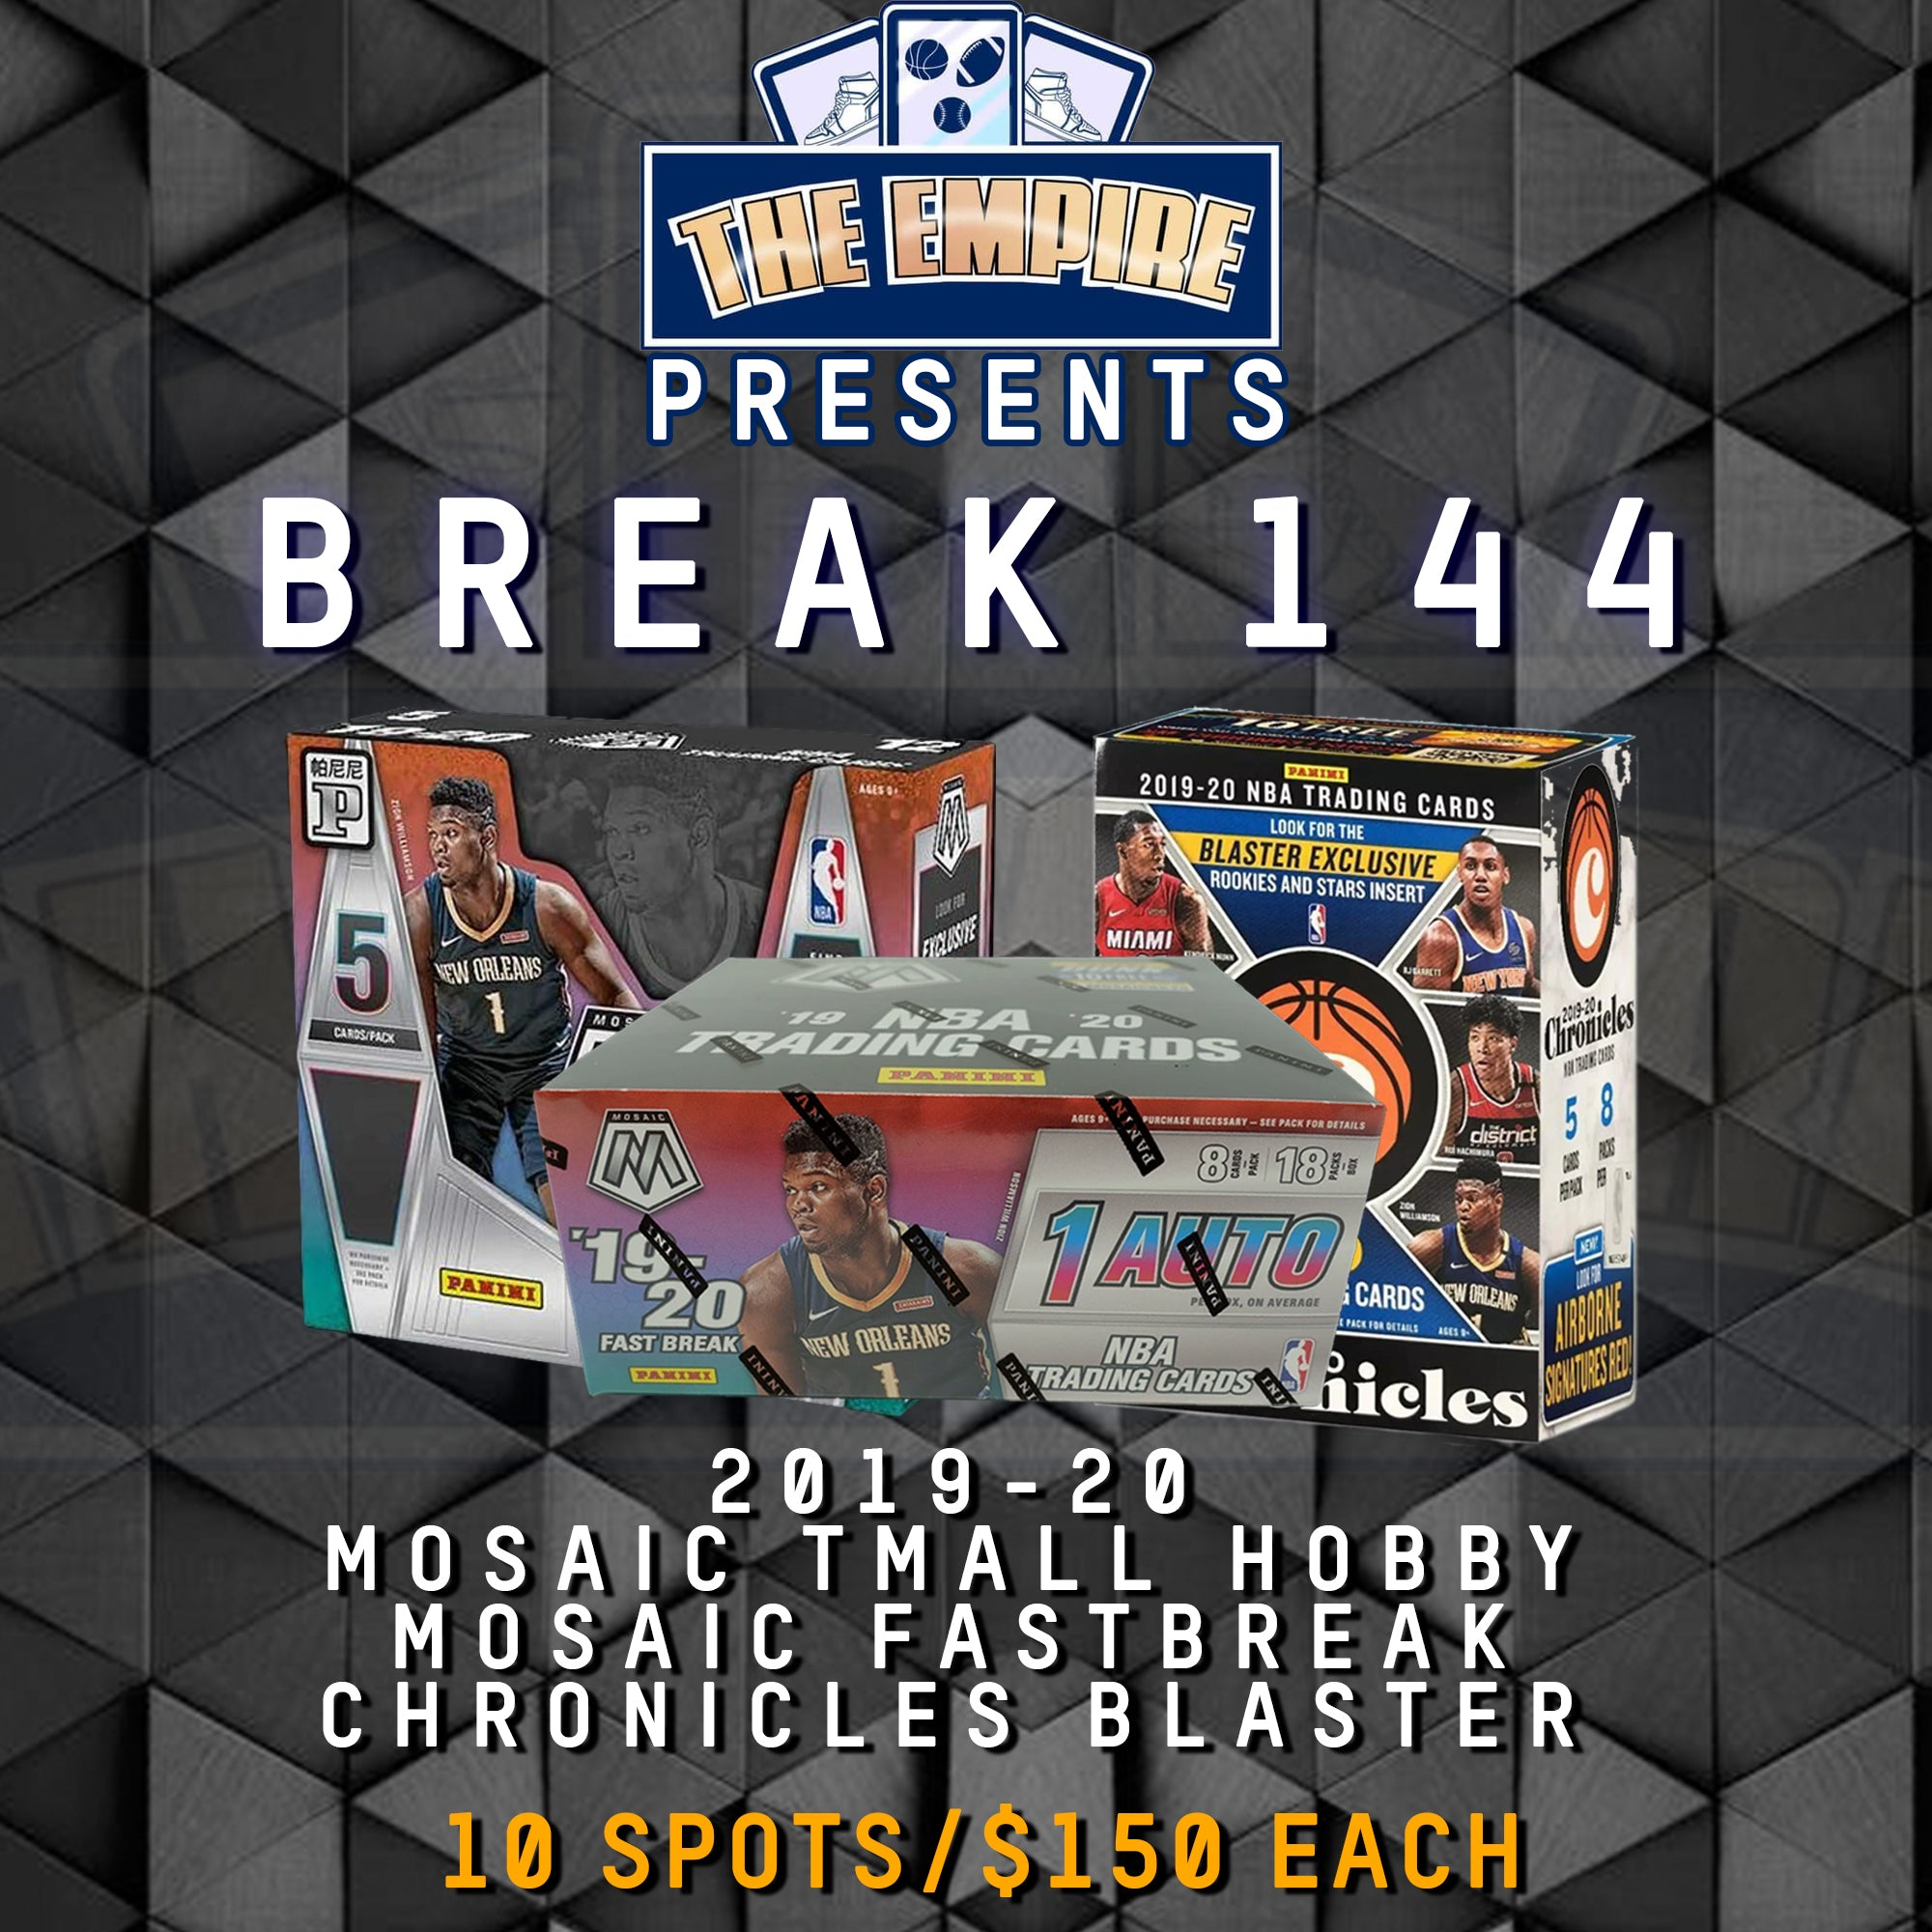 TEAM BREAK #144; 1 MOSAIC TMALL, 1 MOSAIC FASTBREAK, 1 CHRONICLES BLASTER